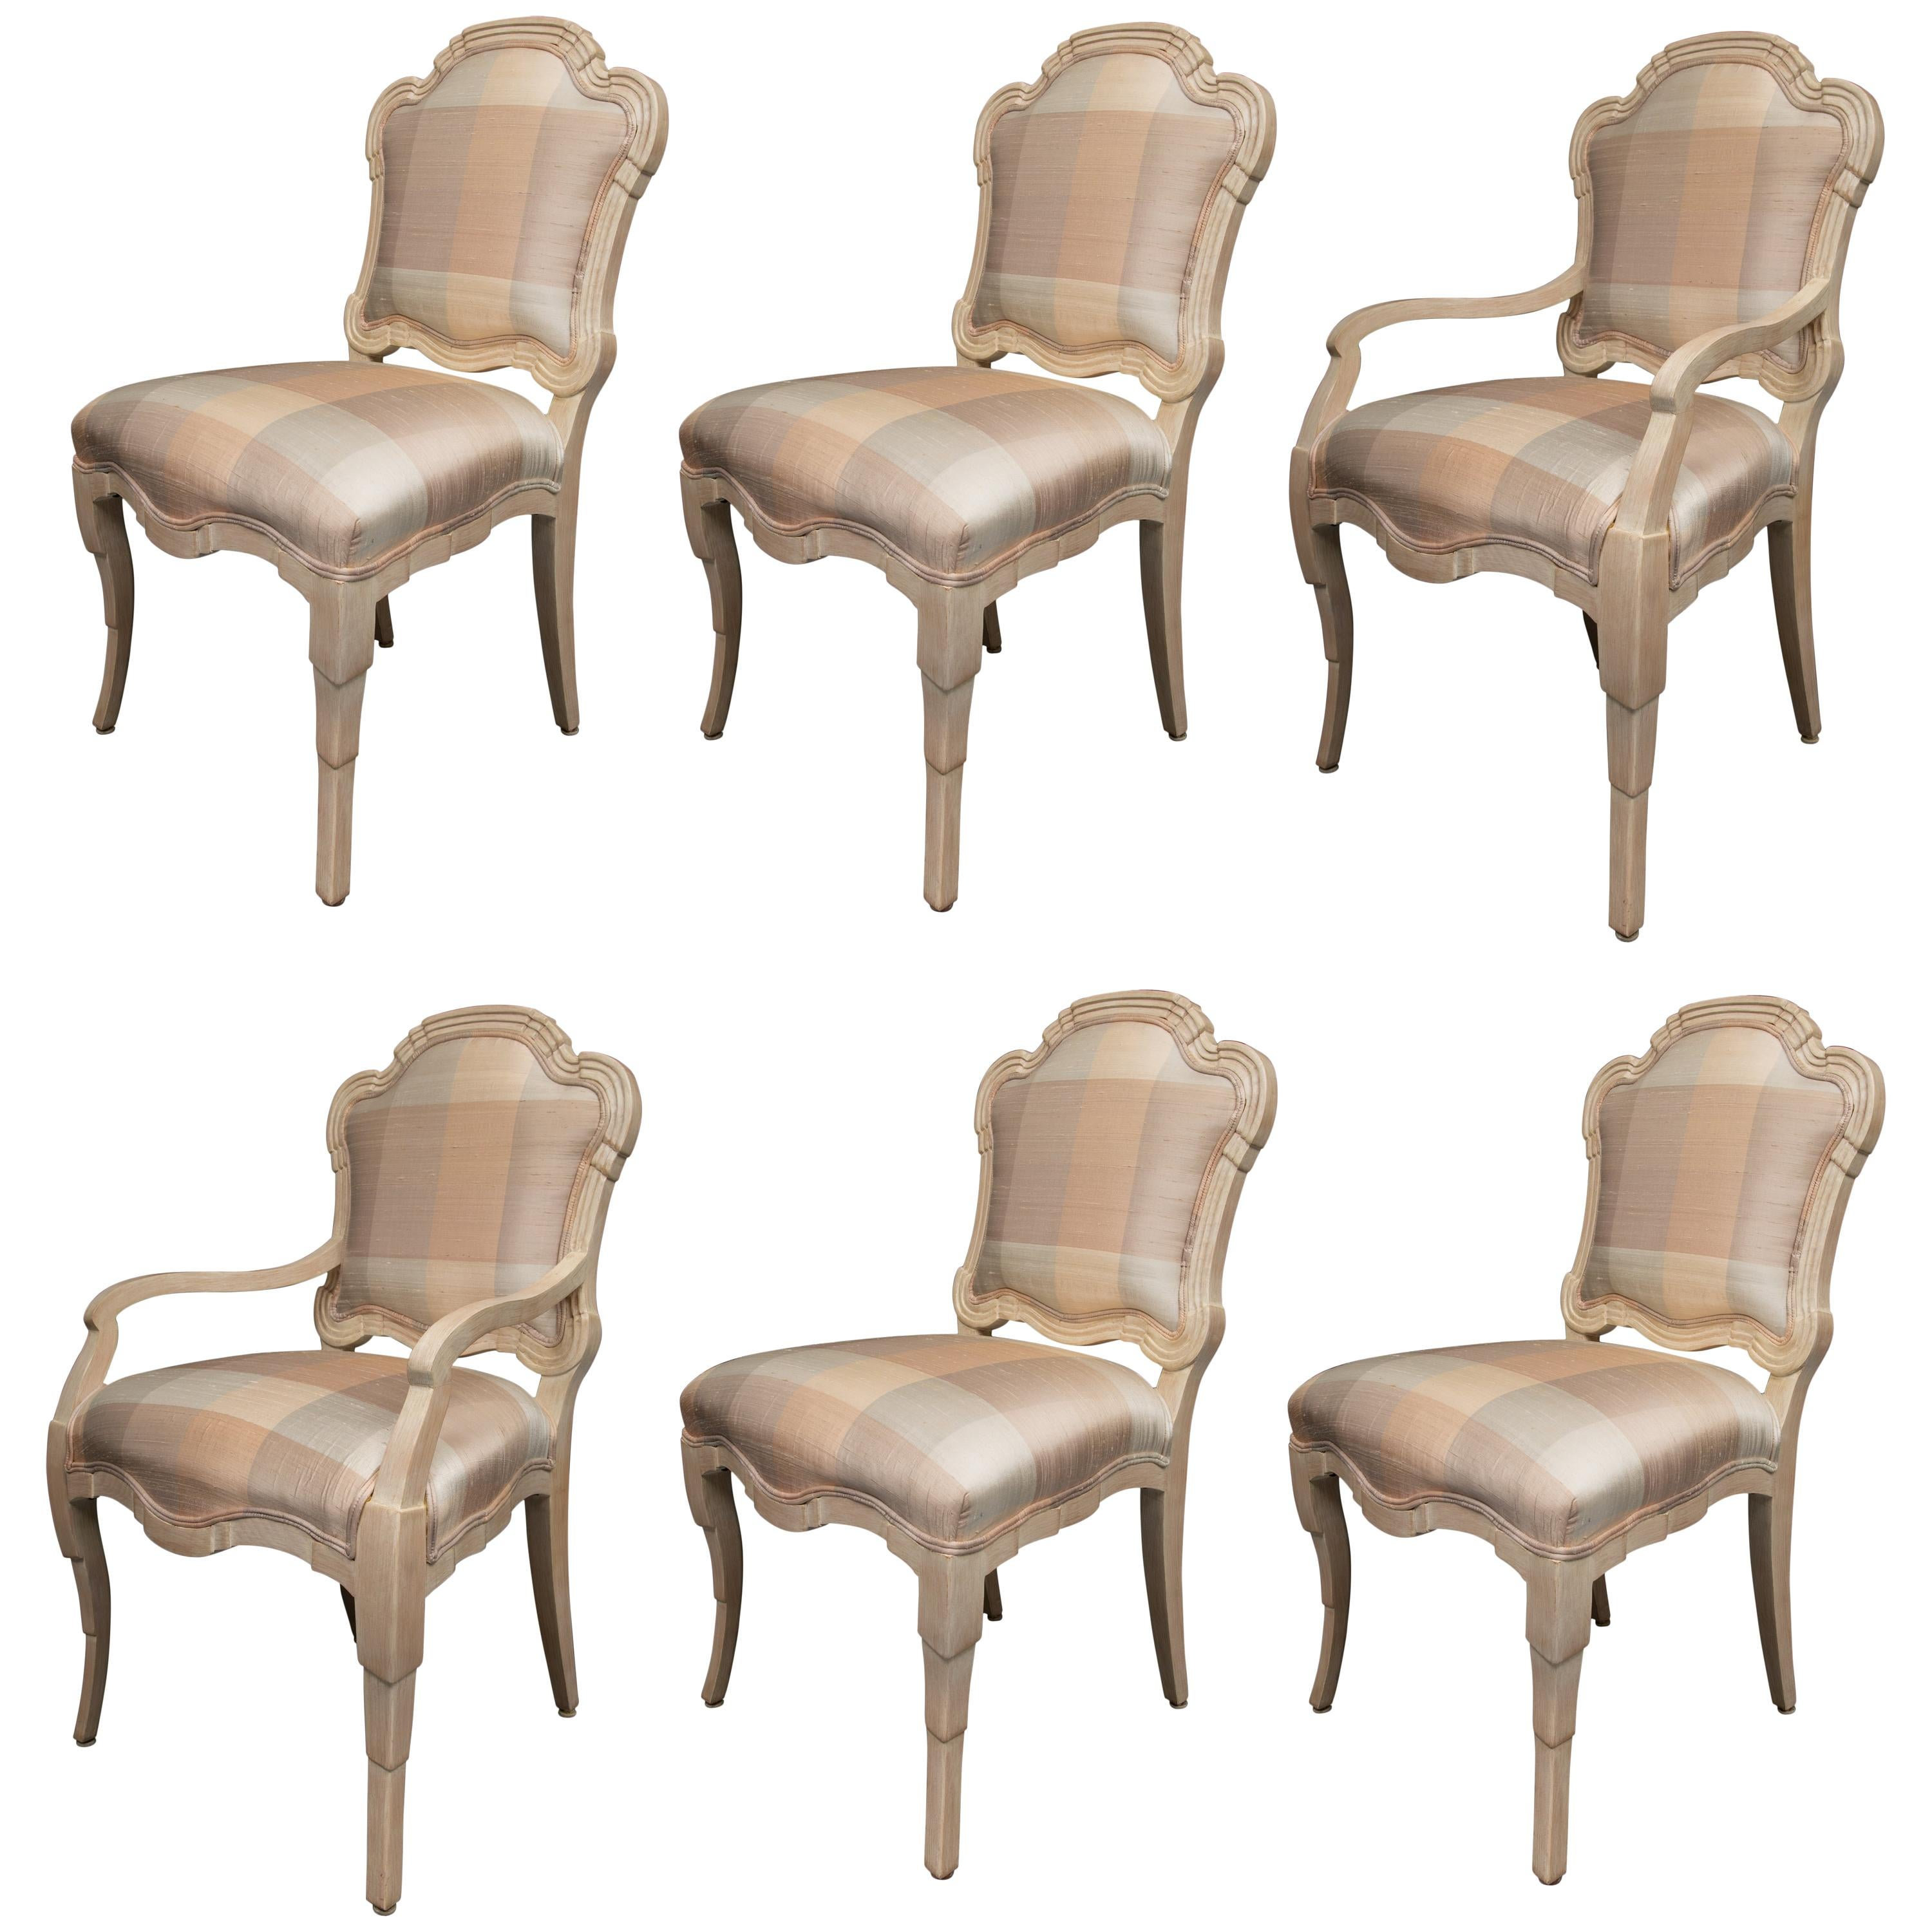 Merveilleux Set Of Six Cream Painted Stylized Louis XVI Style Upholstered Dining Chairs  For Sale